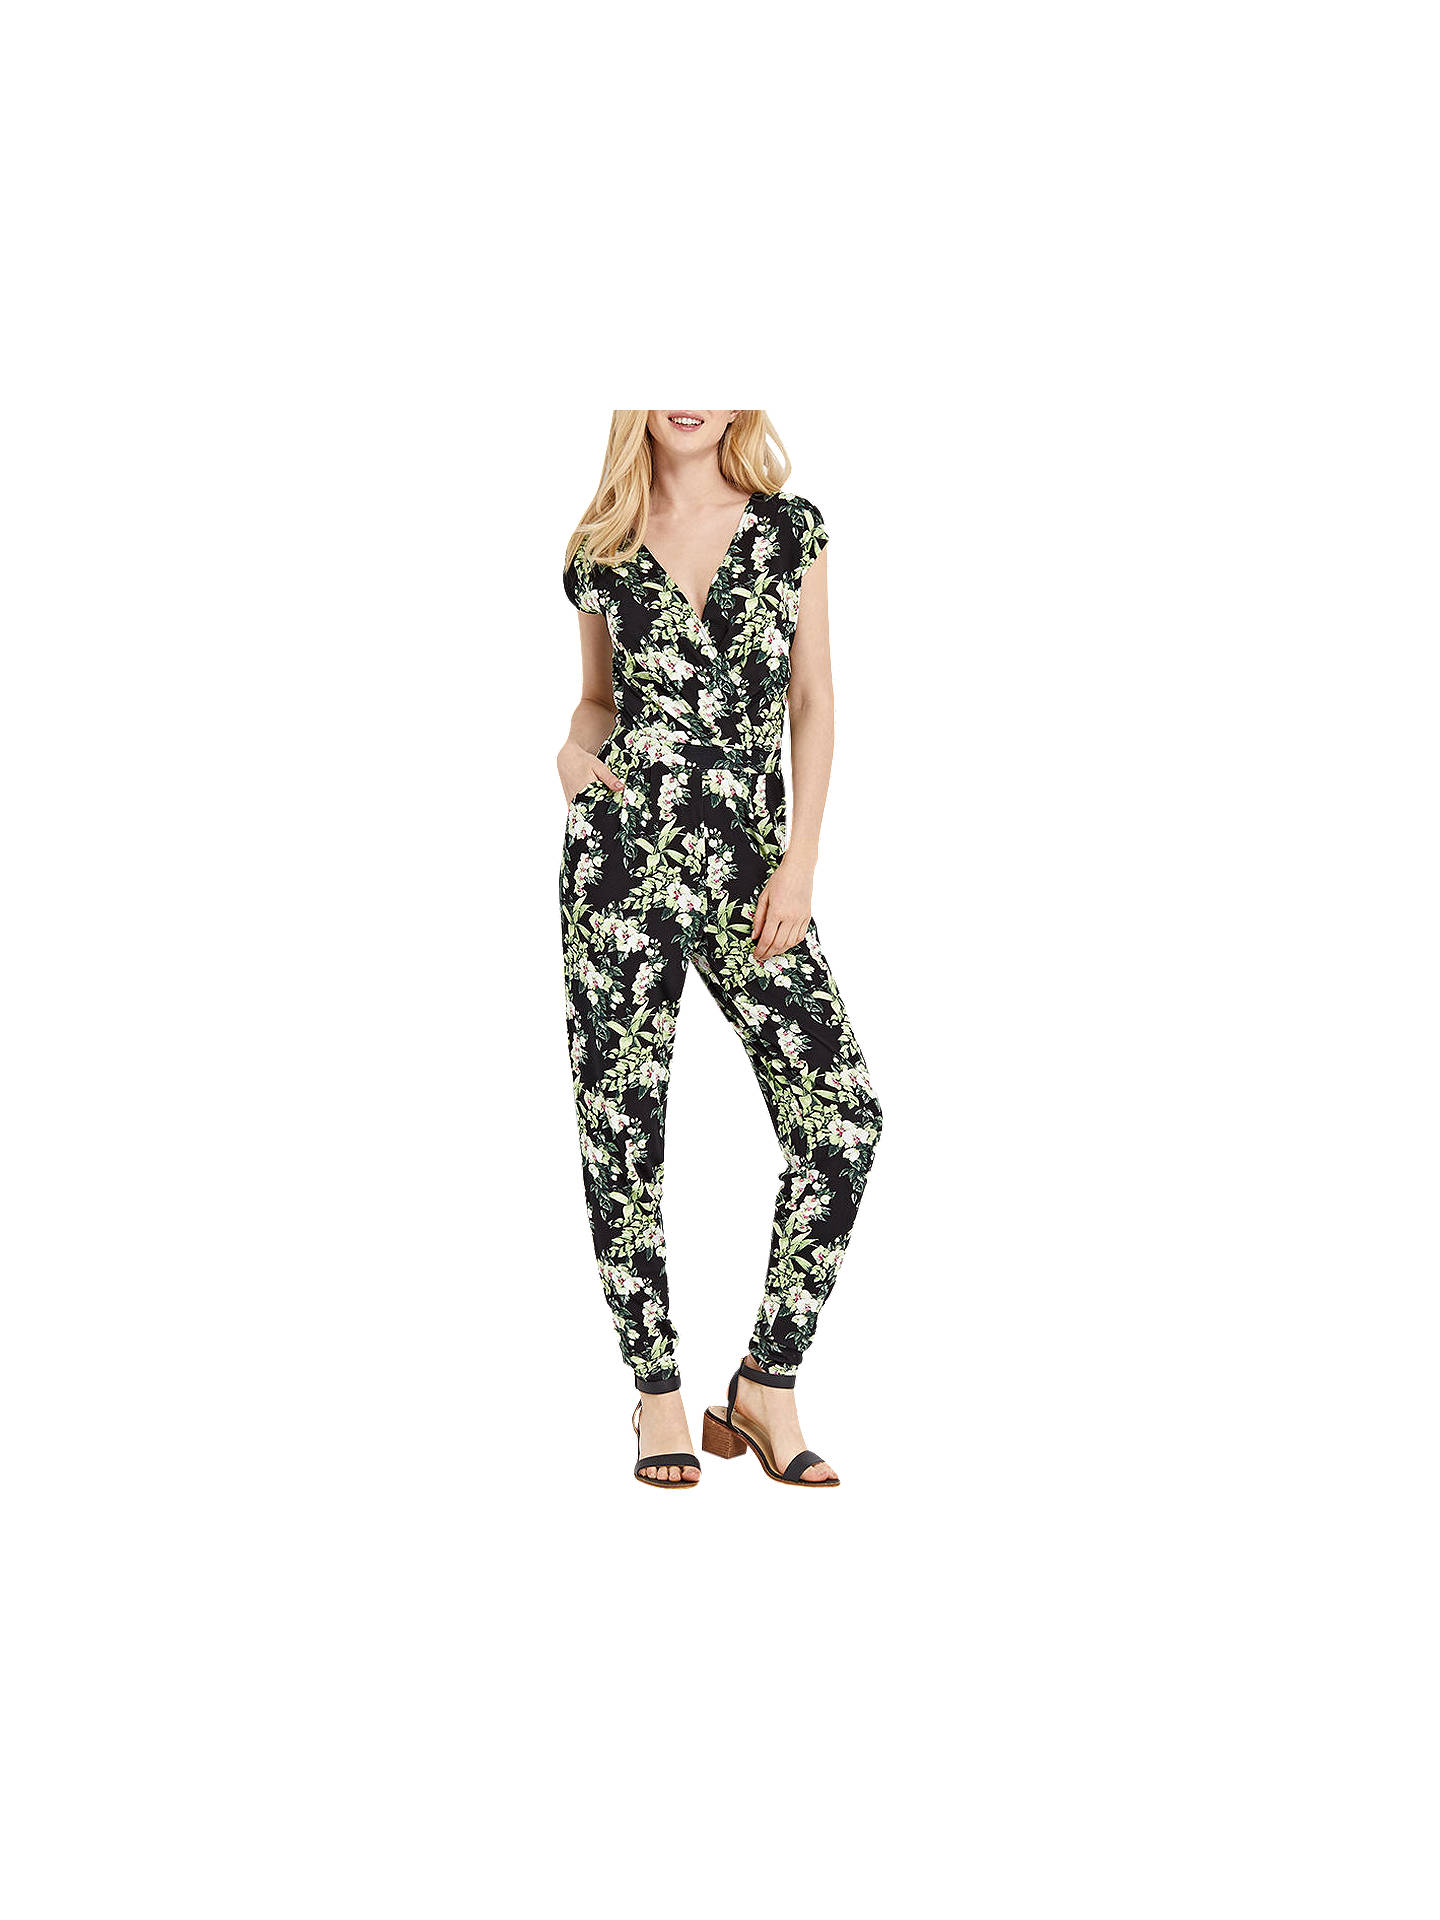 7e2ab5fcc140 Buy Oasis Botanical Tropical Floral Print Jumpsuit, Black/Multi, XS Online  at johnlewis ...